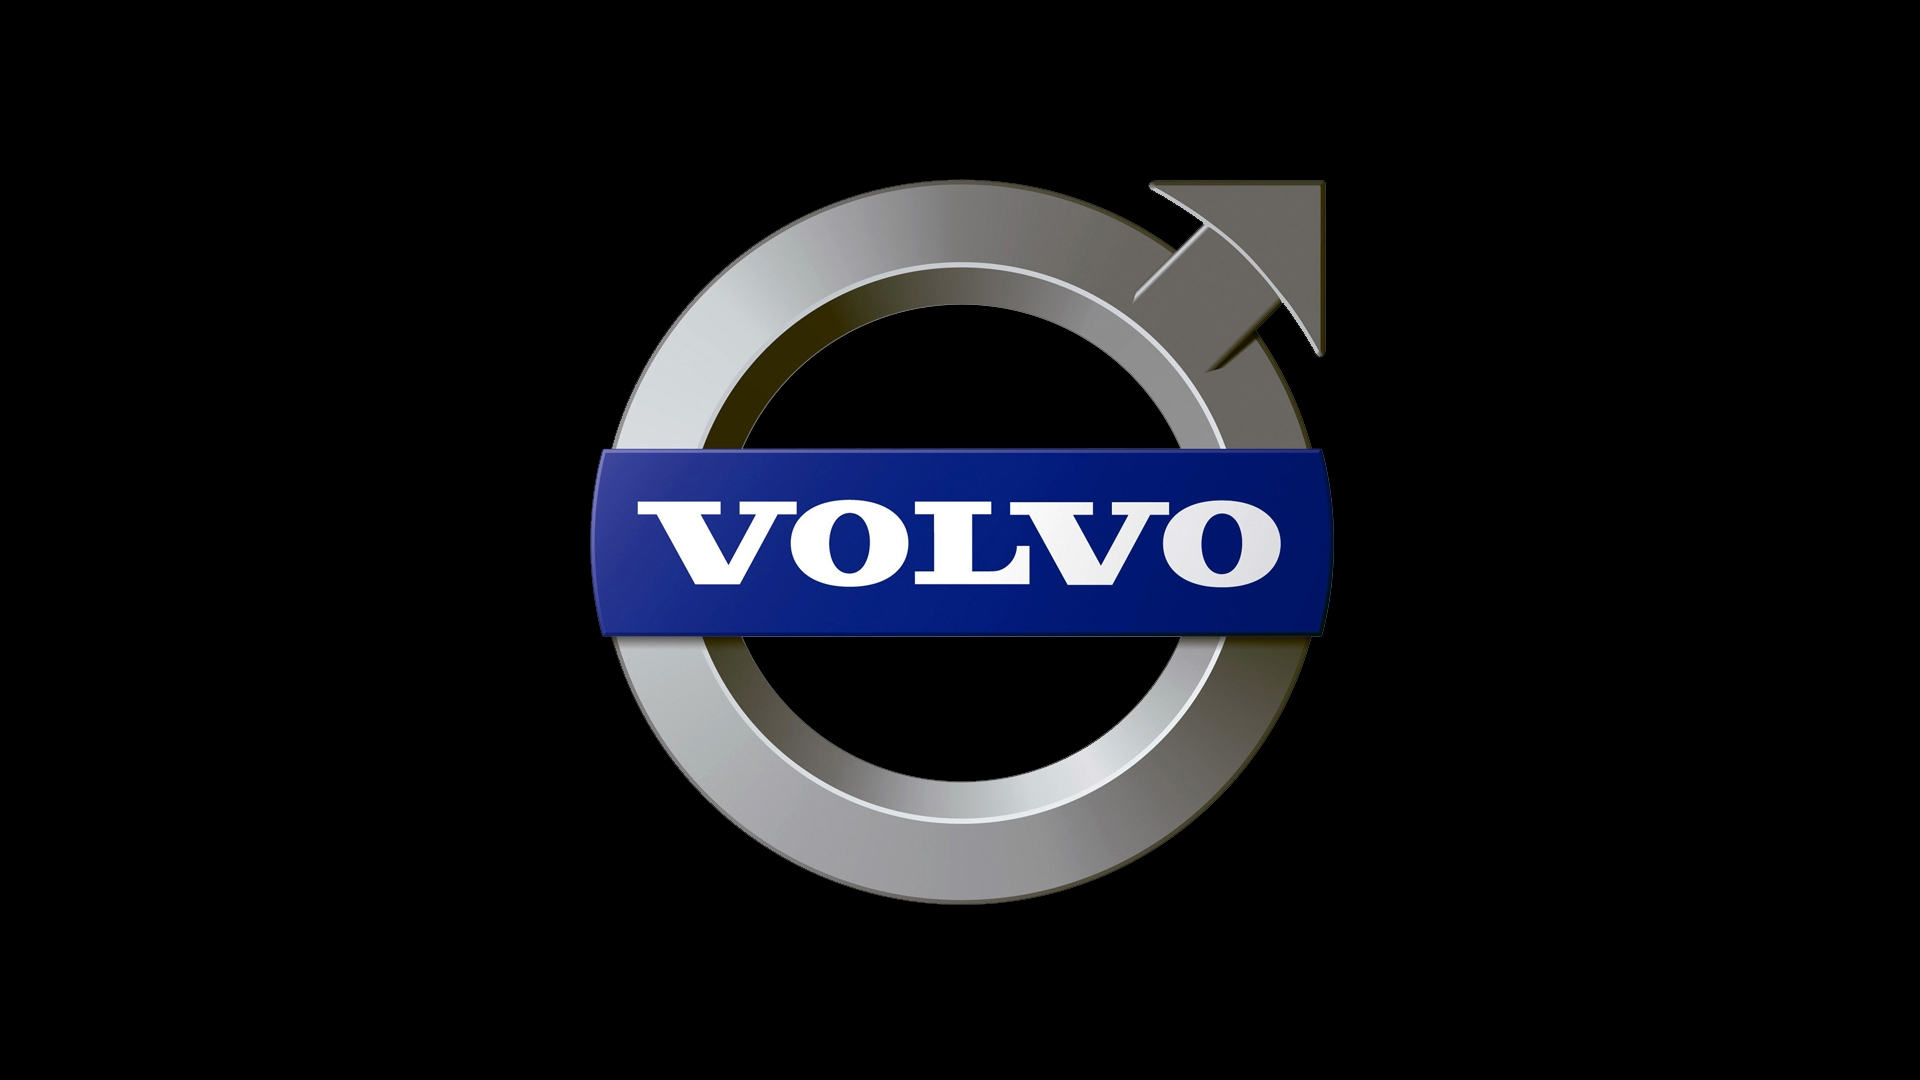 Volvo Logo Volvo Car Symbol Meaning And History Car Brand Names Com